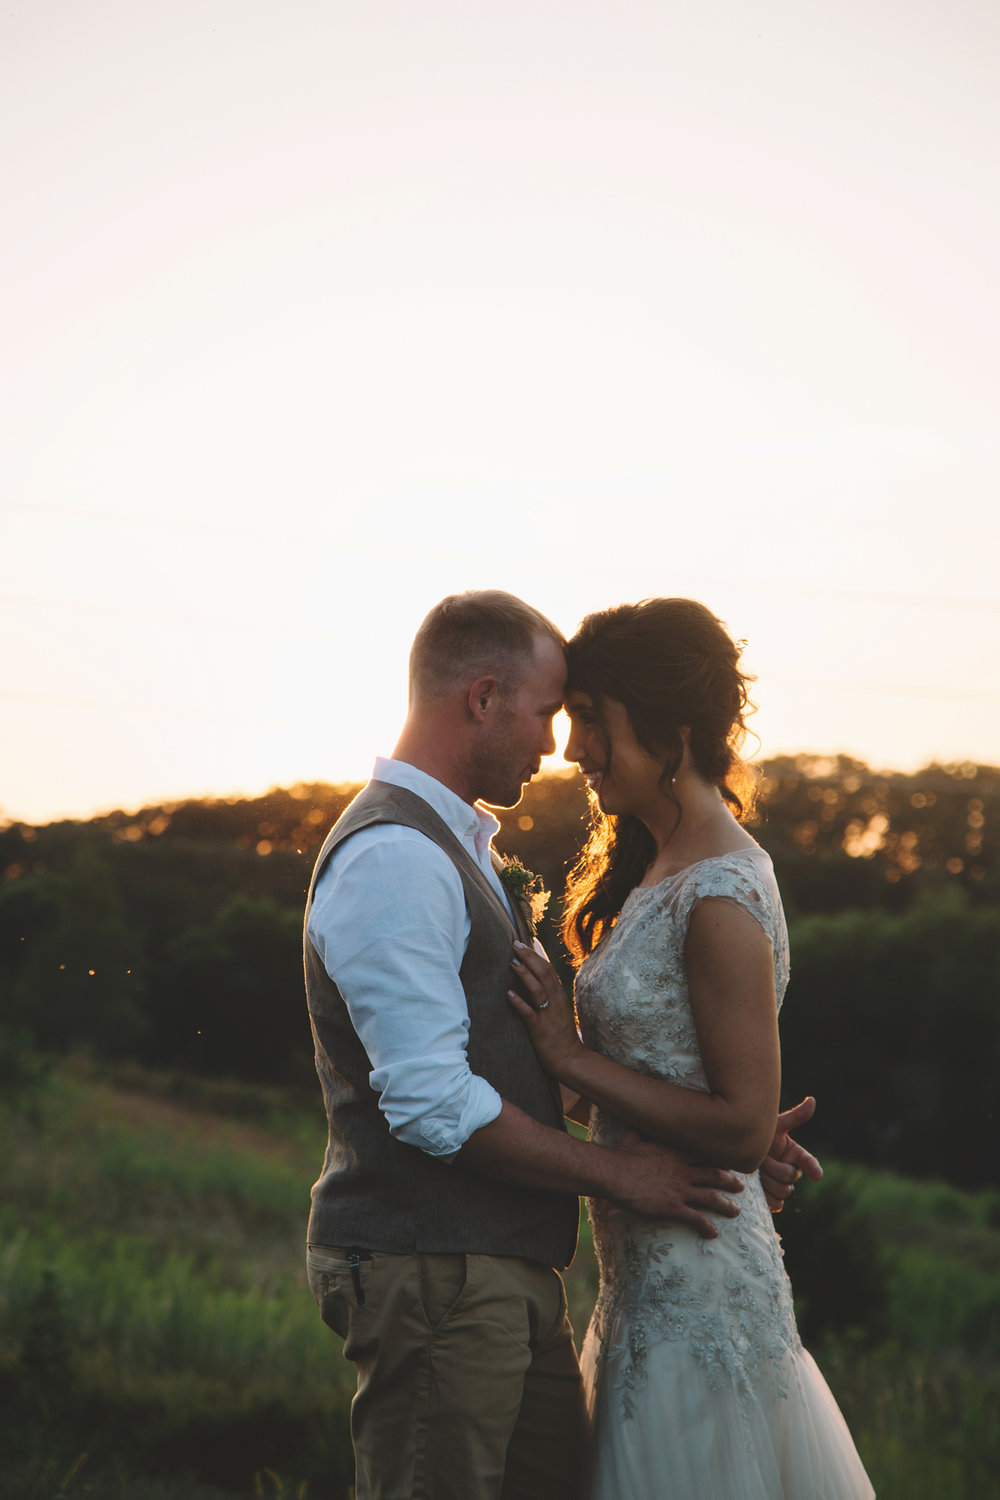 Jordan Edens Photography__Washington wedding photographer_bride and groom_sweet wedding moments_must have bride and groom photos_outdoor wedding_wedding ceremony_Tri Cities wedding photographer_wedding details_sunset photos_golden hour_natural light